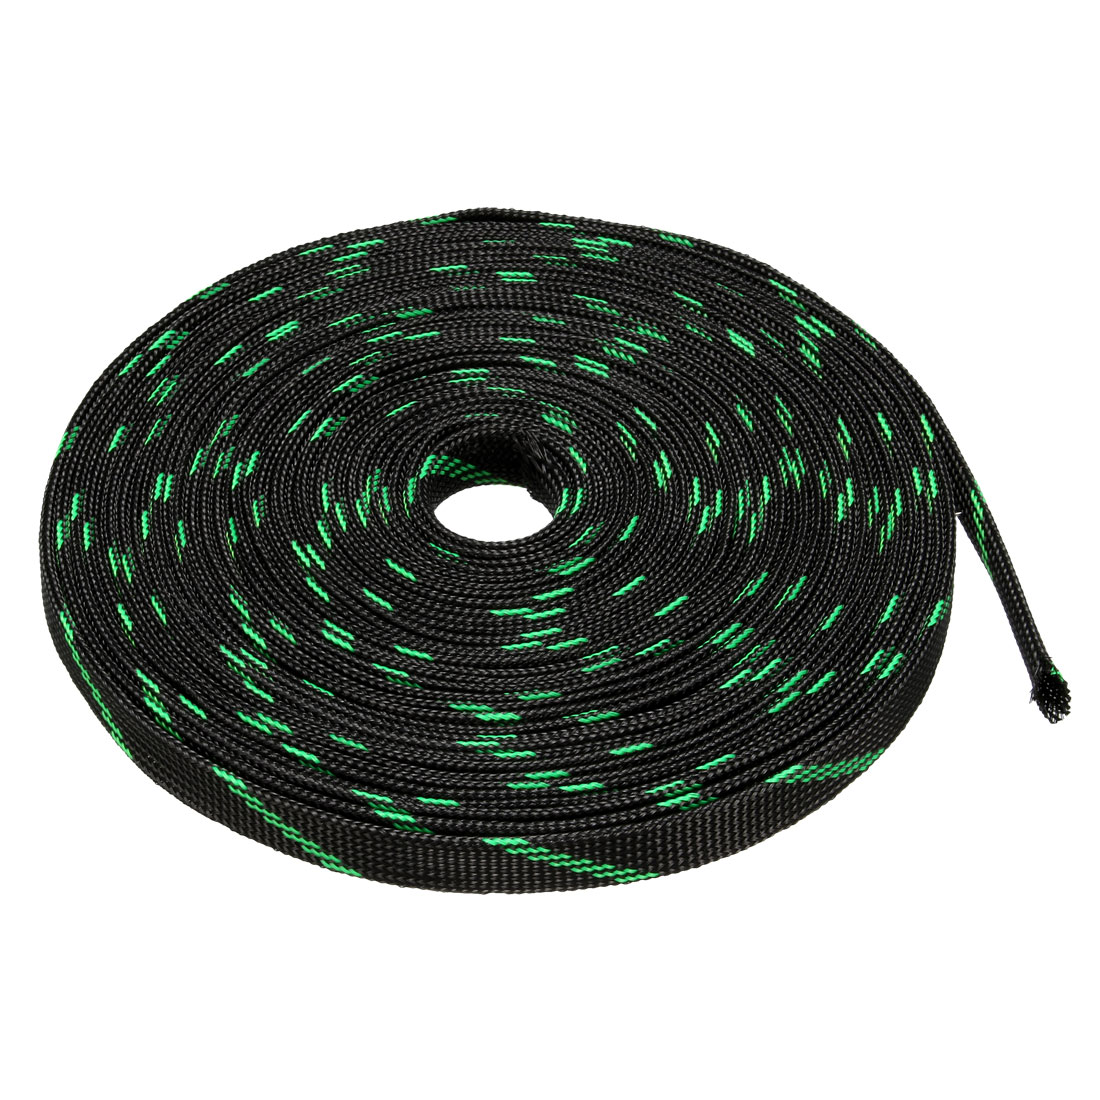 10mm Dia Tight Braided PET Expandable Sleeving Cable Wrap Sheath Black Green 16ft